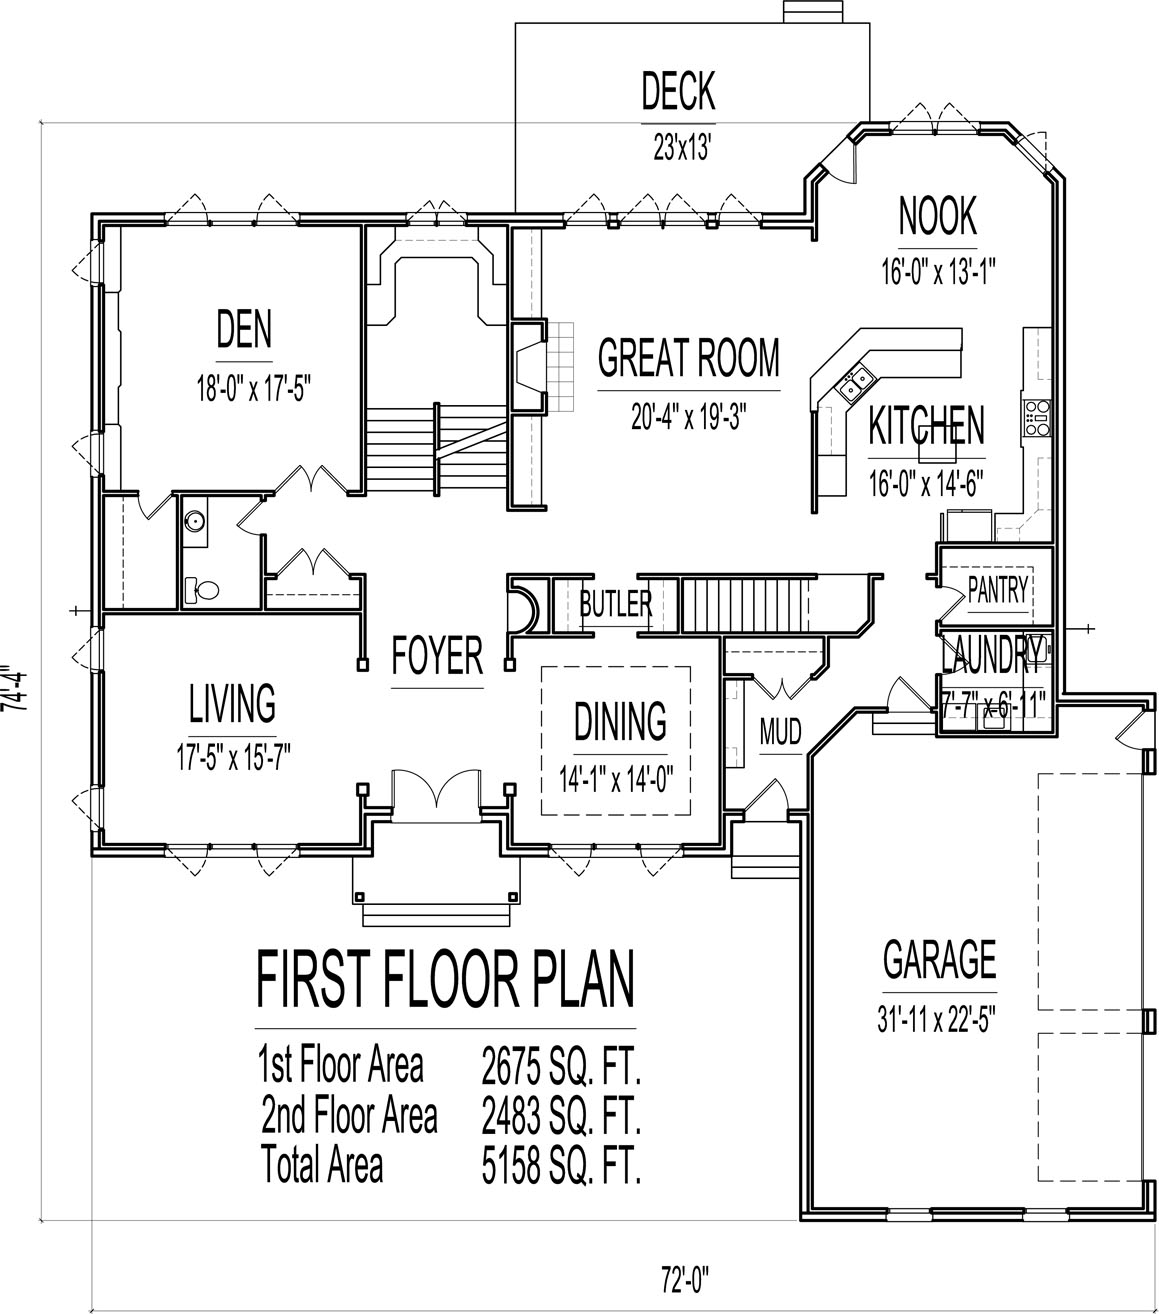 5000 sq ft House Floor Plans 5 Bedroom 2 story Designs ...